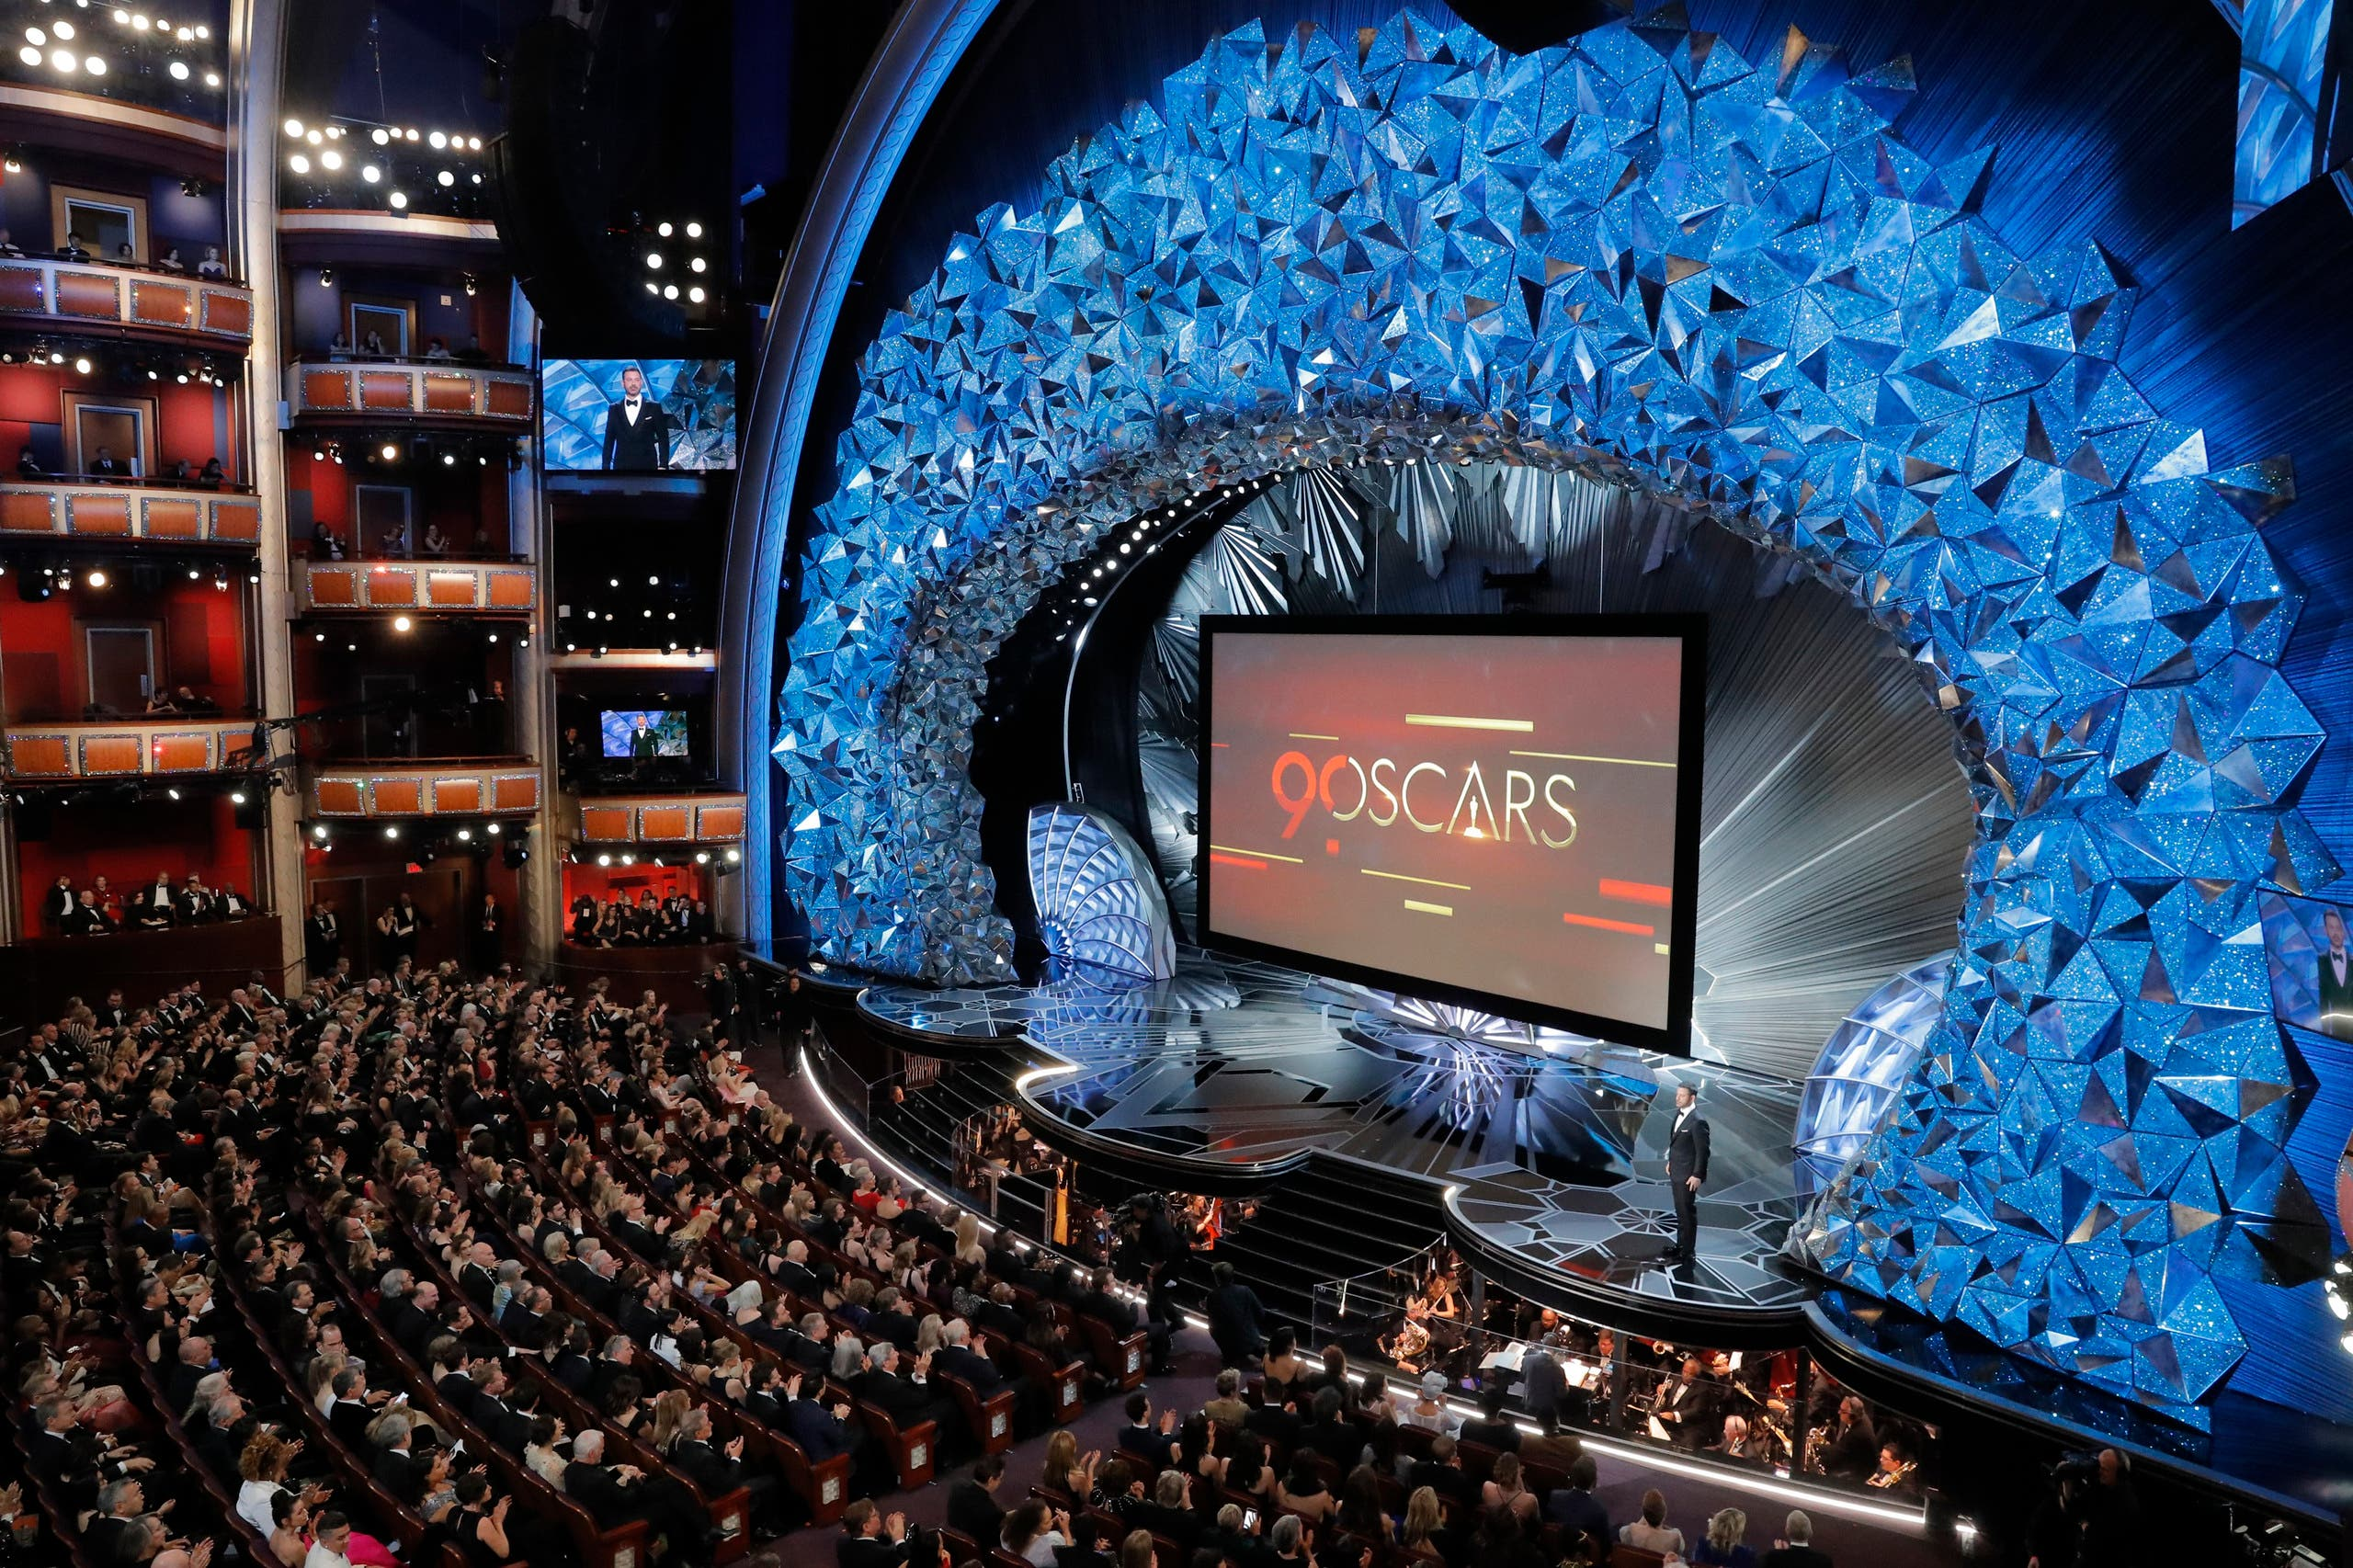 90th Academy Awards - Oscars Show – Hollywood, California, U.S., 04/03/2018 – General view of the stage as host Jimmy Kimmel presides over the show. (Reuters)